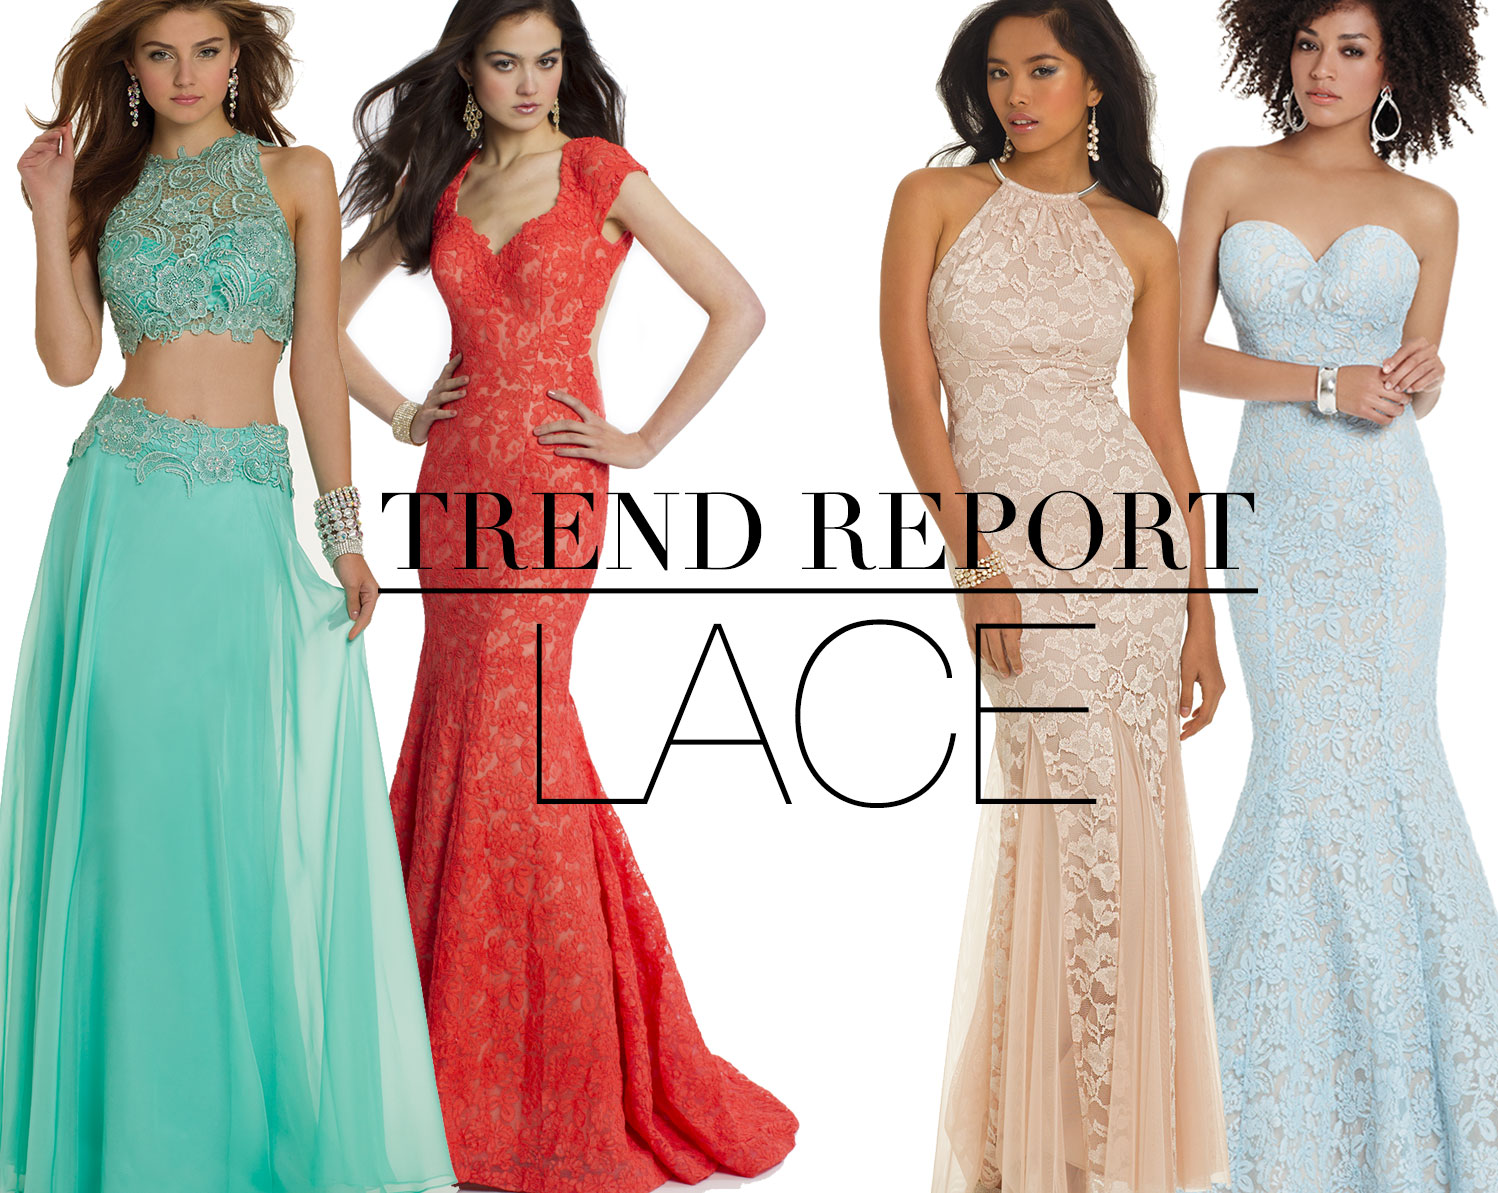 The Prom 2014 On-Trend Report: Camille La Vie & Group USA ...